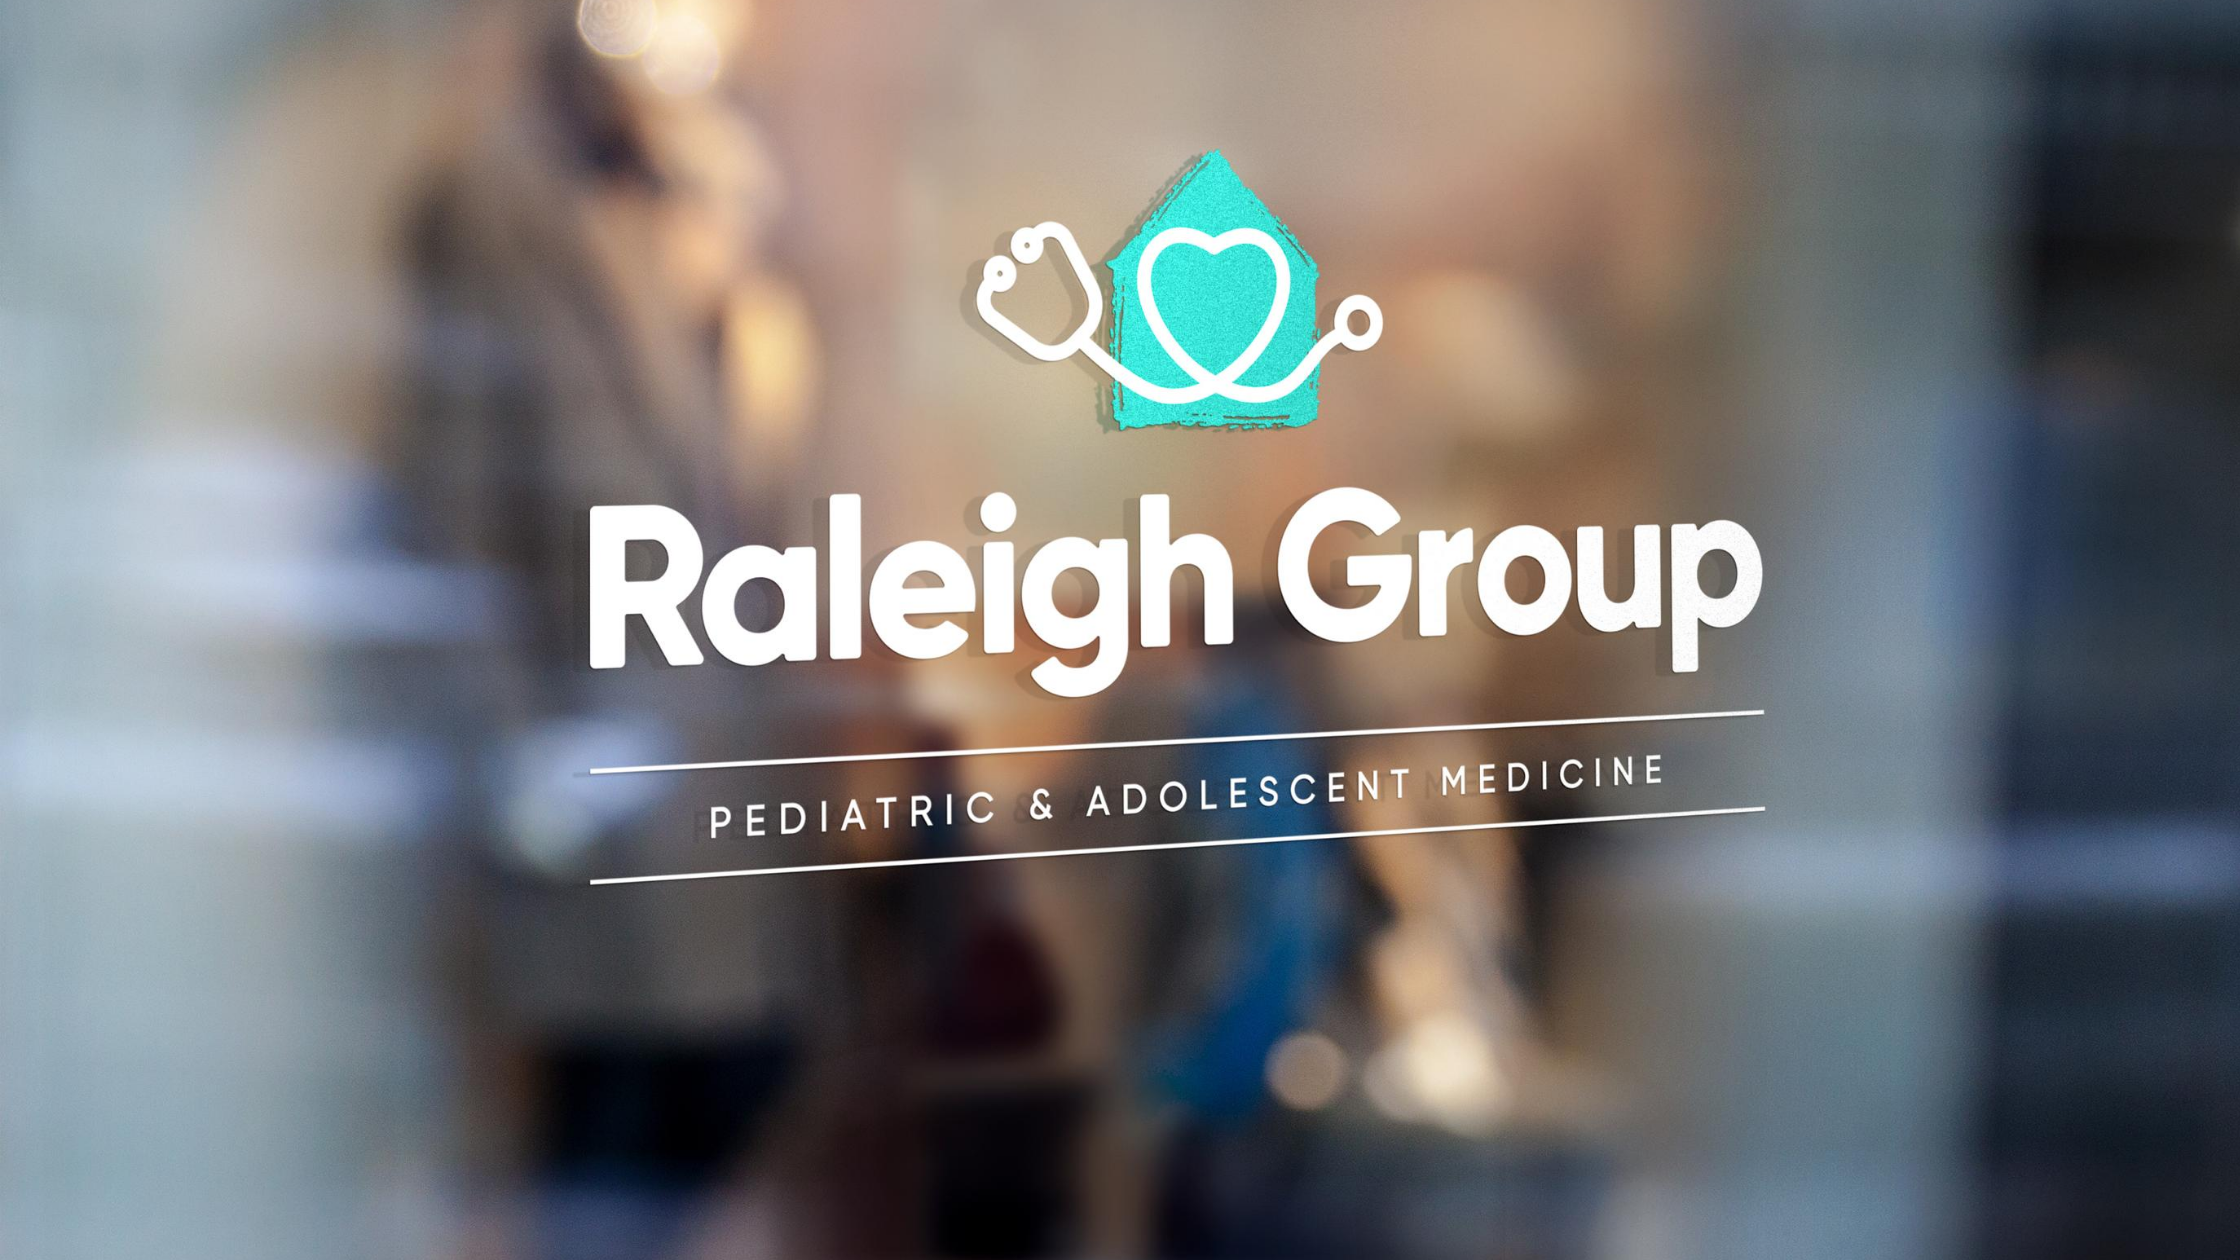 Raleigh Group branded window